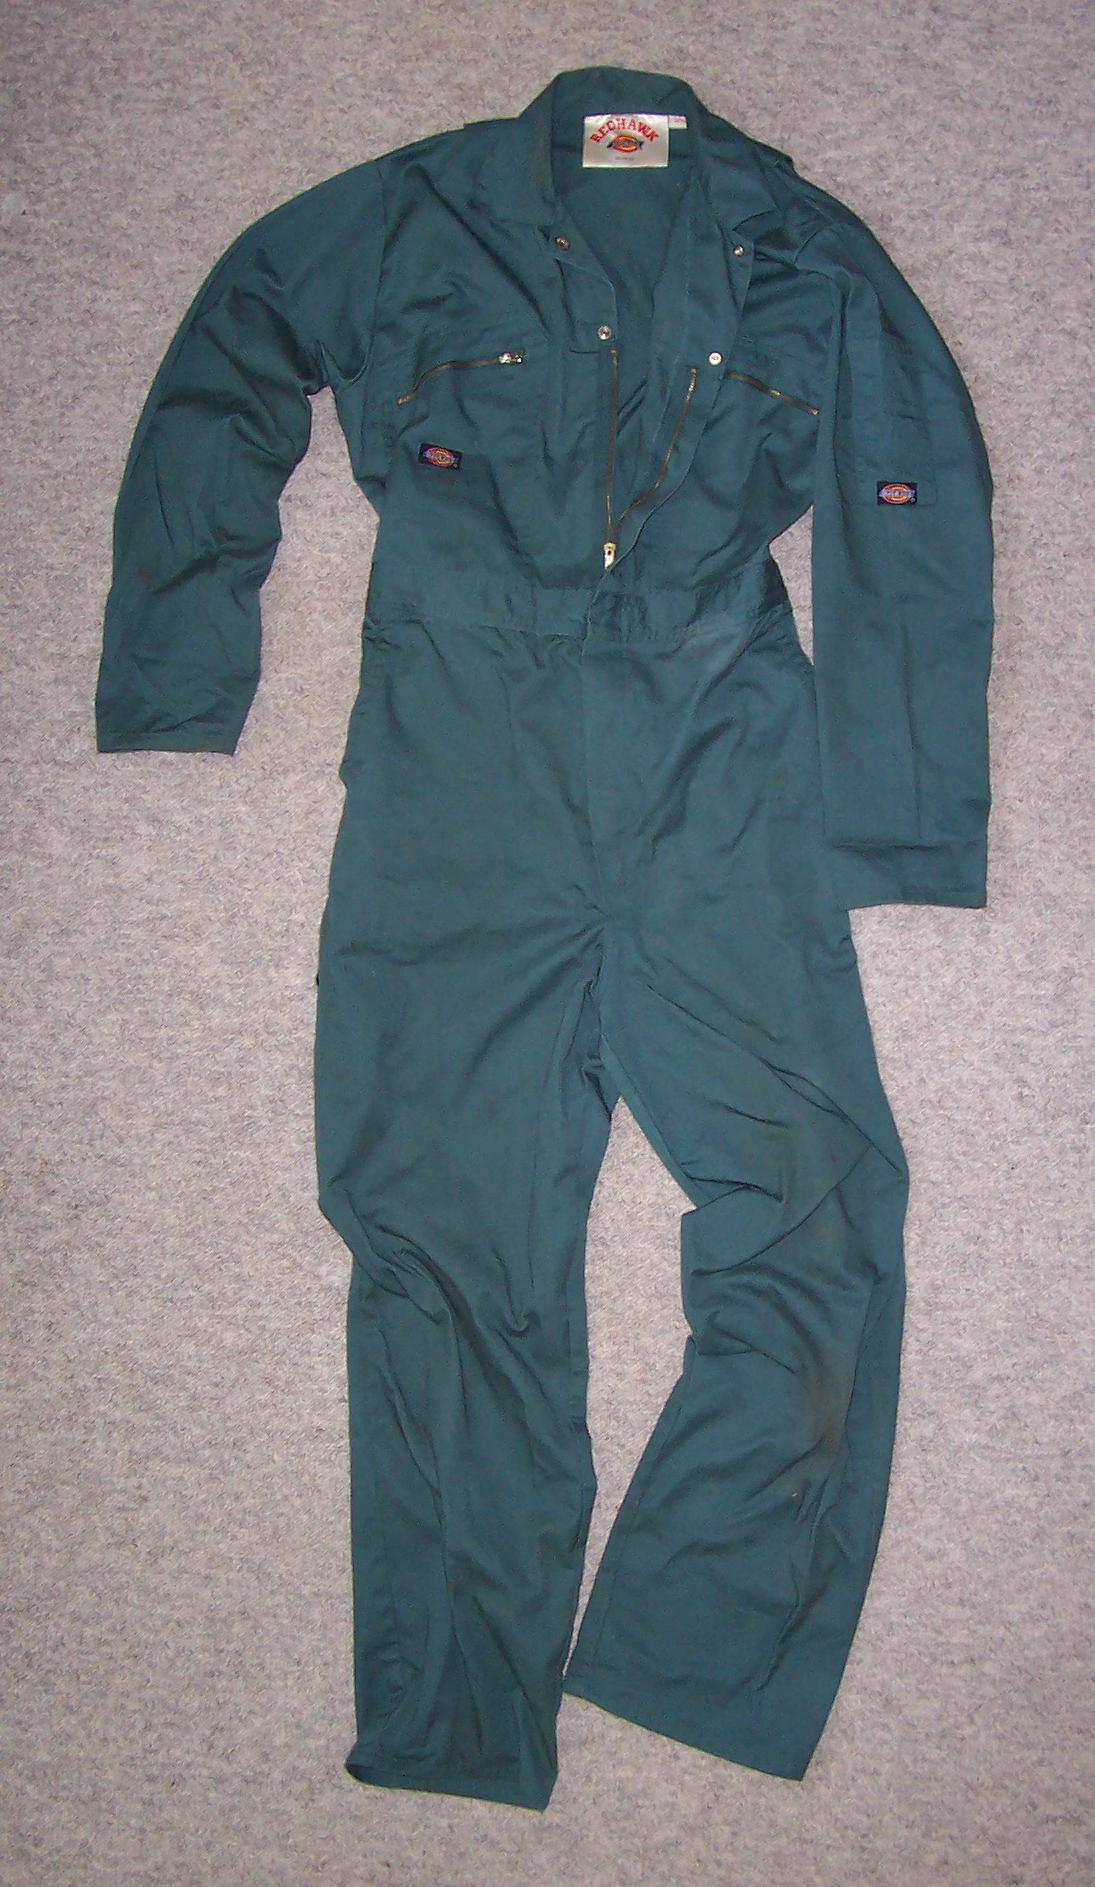 7b4bc5adf0c7 Boilersuit - Wikipedia